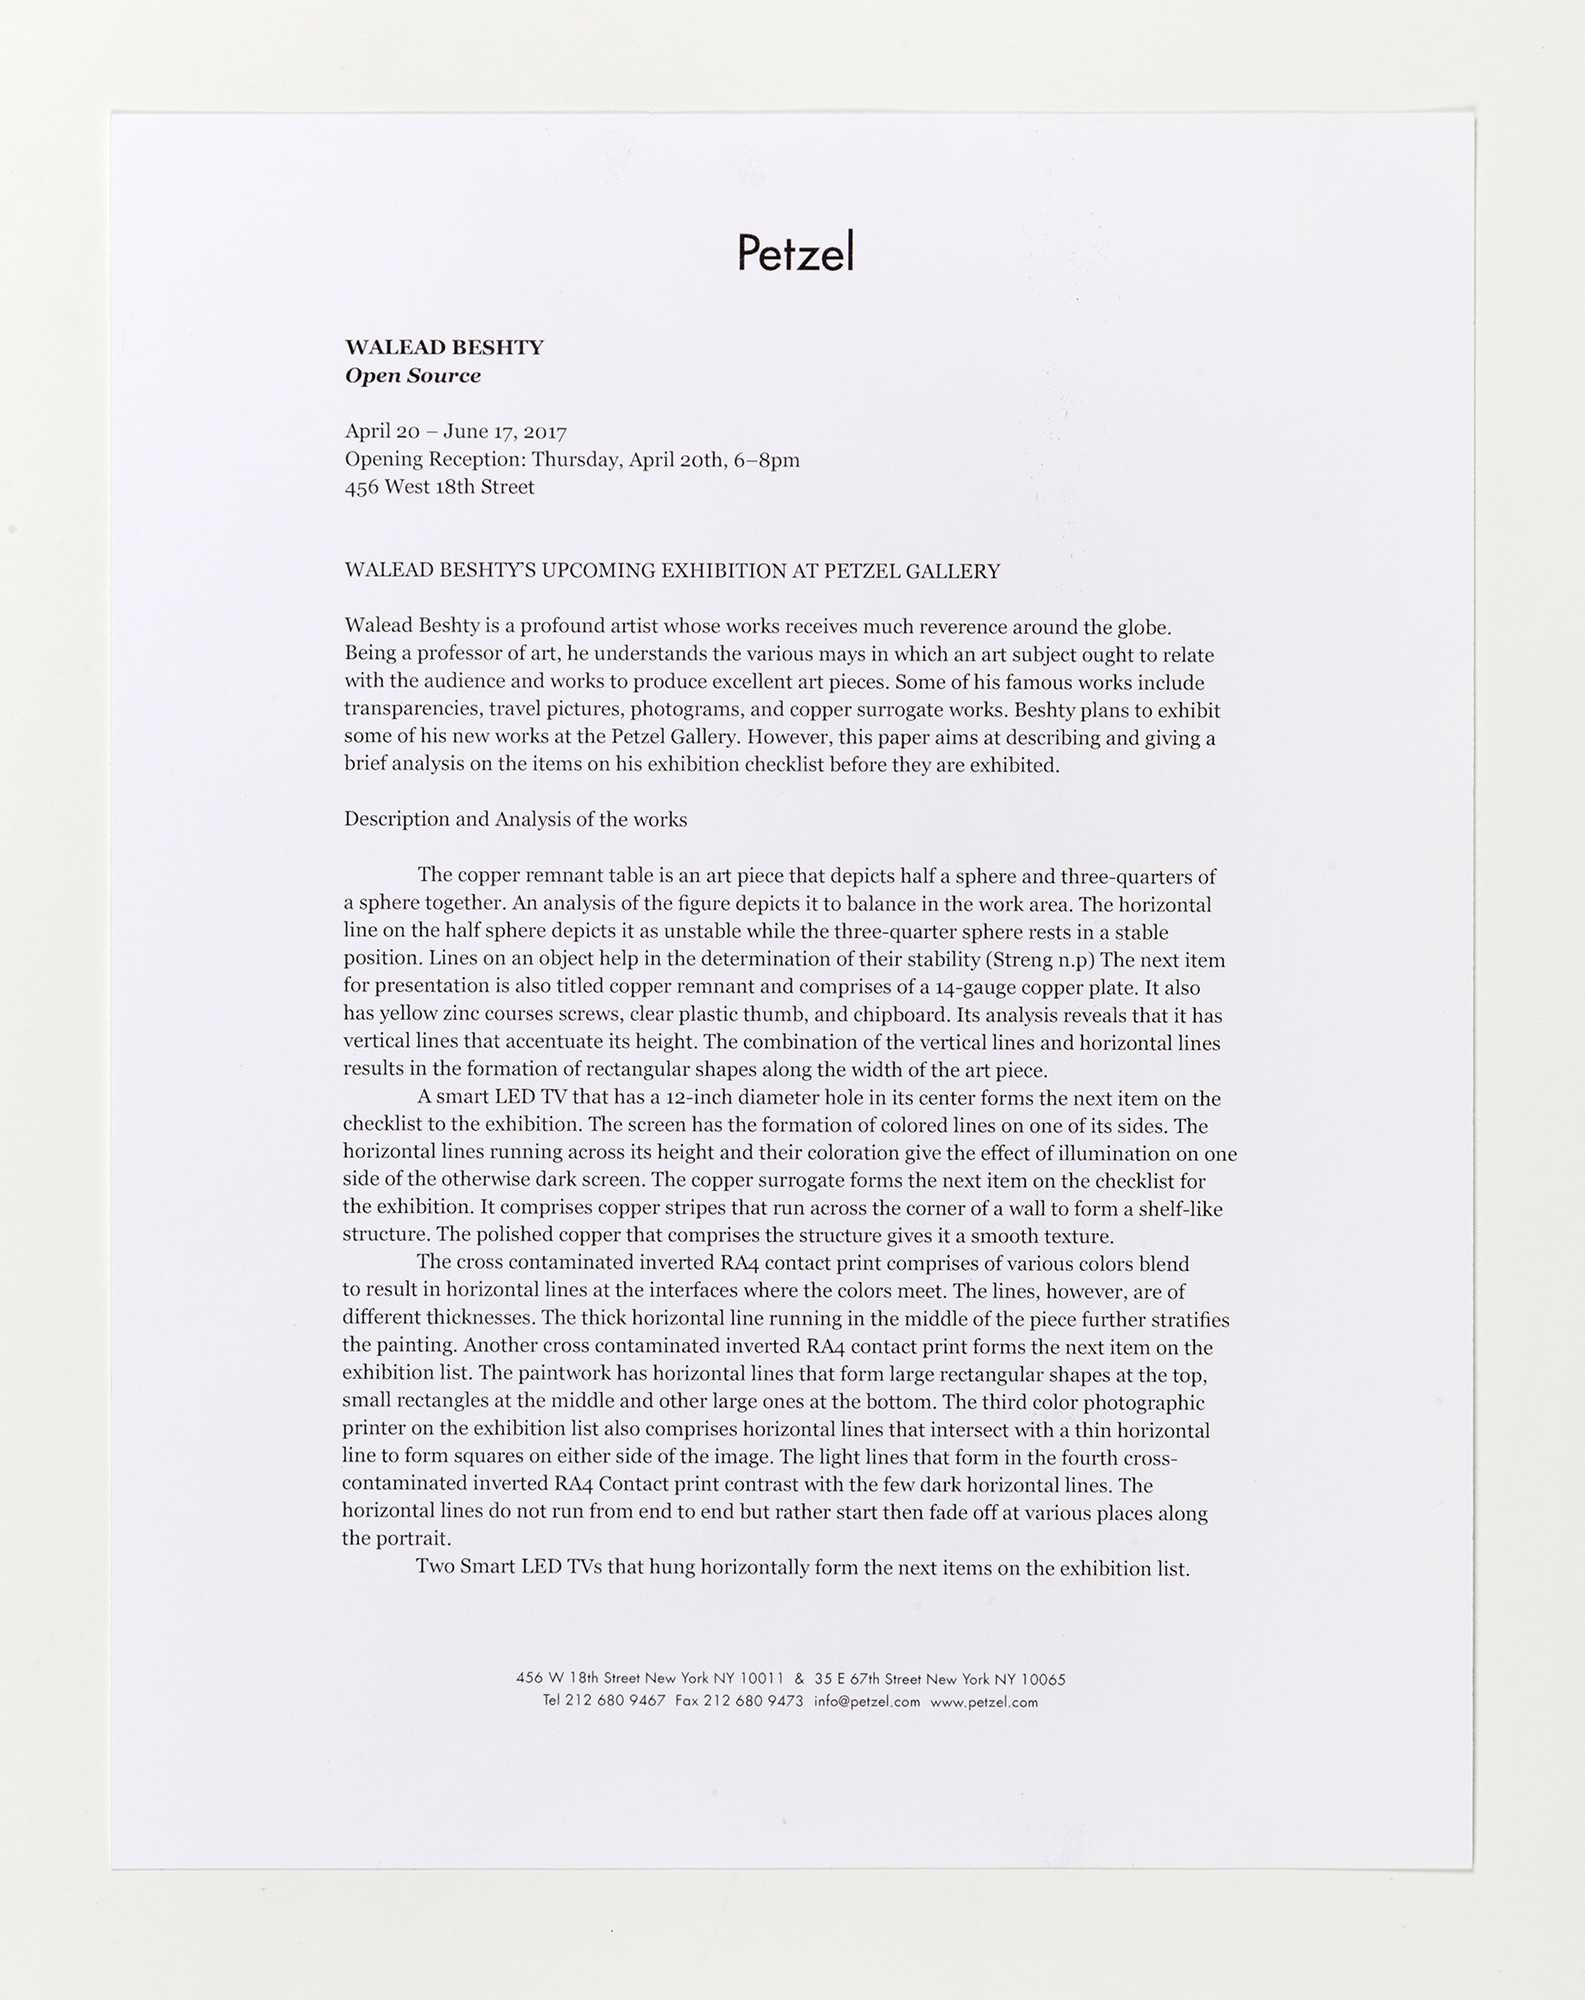 Open Source press release   Petzel Gallery  New York  New York  2017